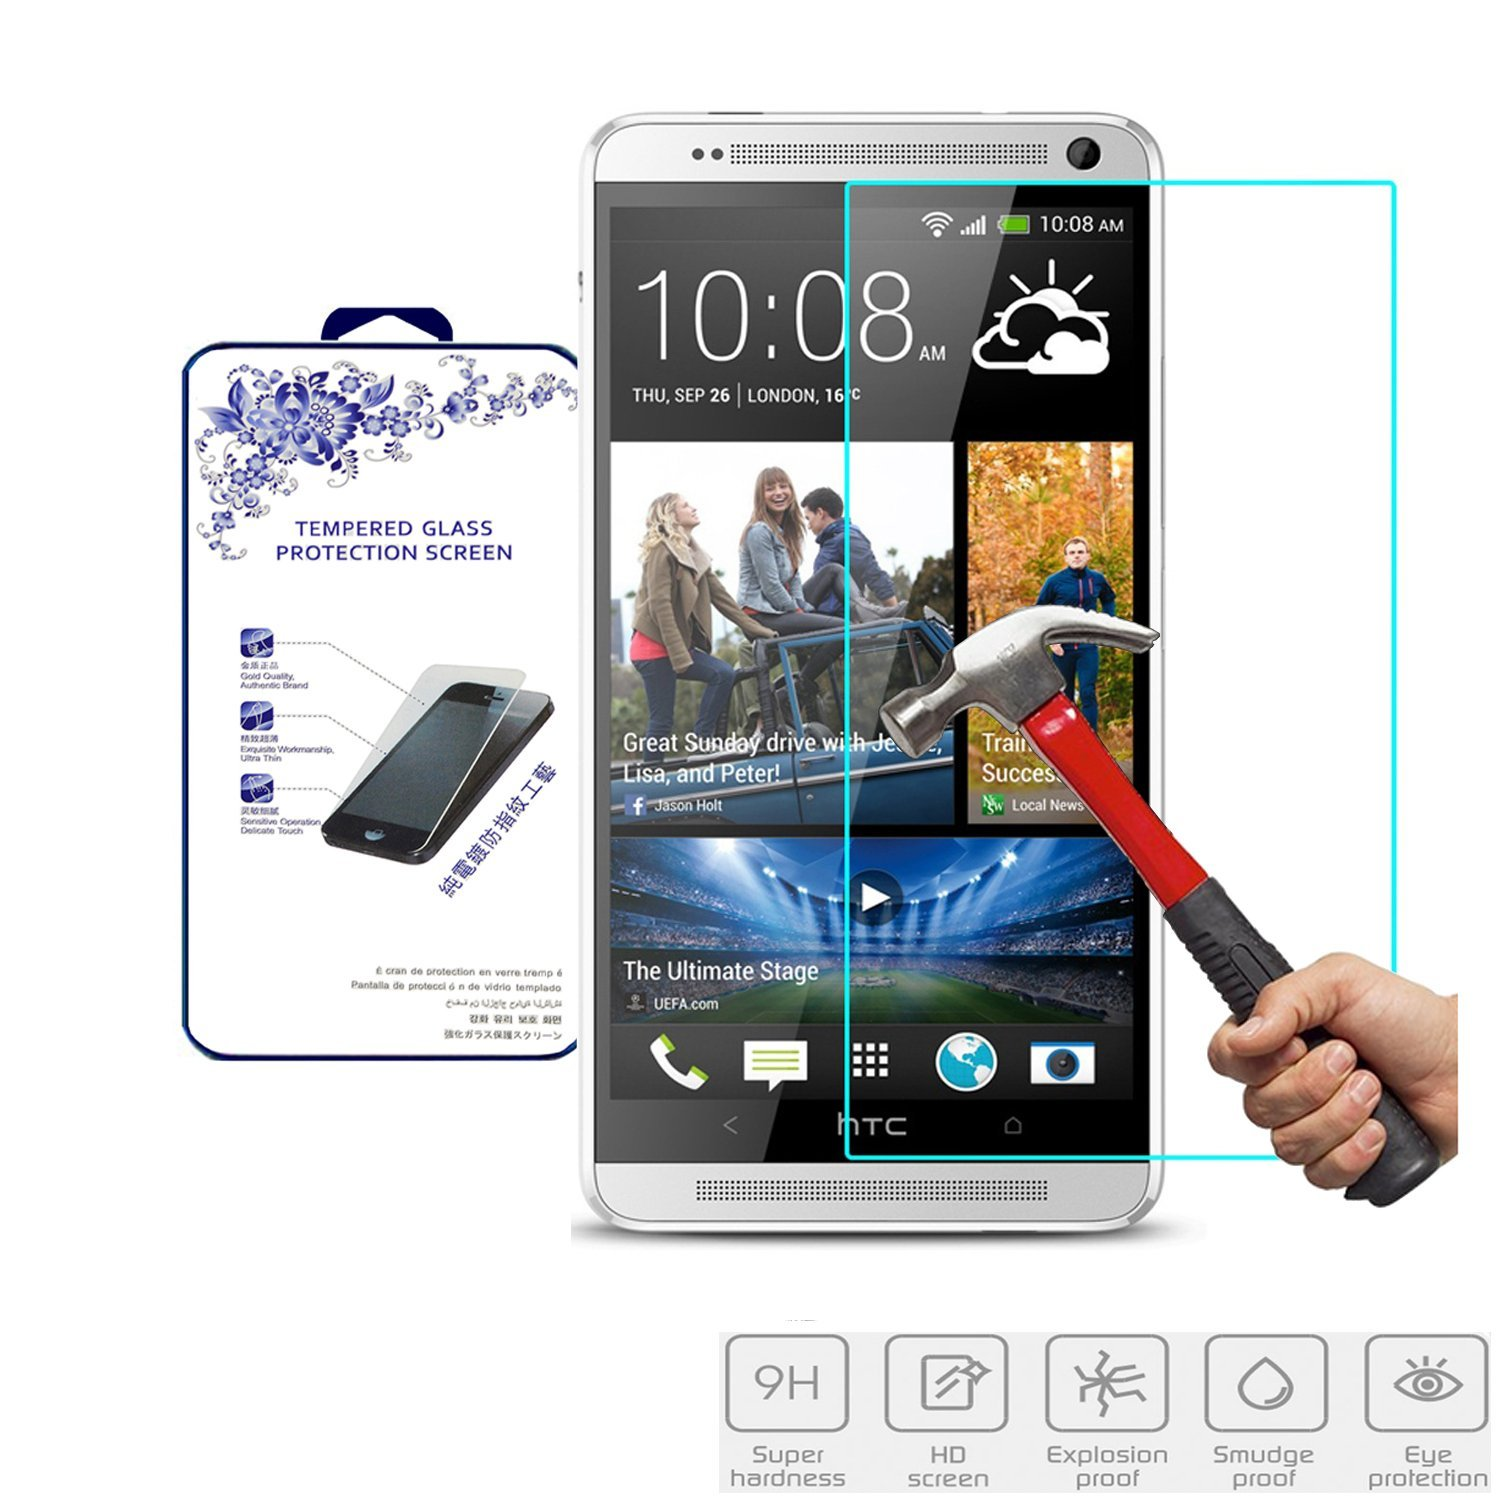 HTC One Max Glass Screen Protector, Nacodex® Premium Real Tempered Glass Film Screen Protector [Guardian Series] 0.33mm 2.5d **New** Ultra Slimpremium Ballistic 99.9% Touch Accurate Perfect Fit Screen Protector Maximum Screen Protection for HTC One Max - ATT Verizon T-mobile, Replacement Glass (HTC